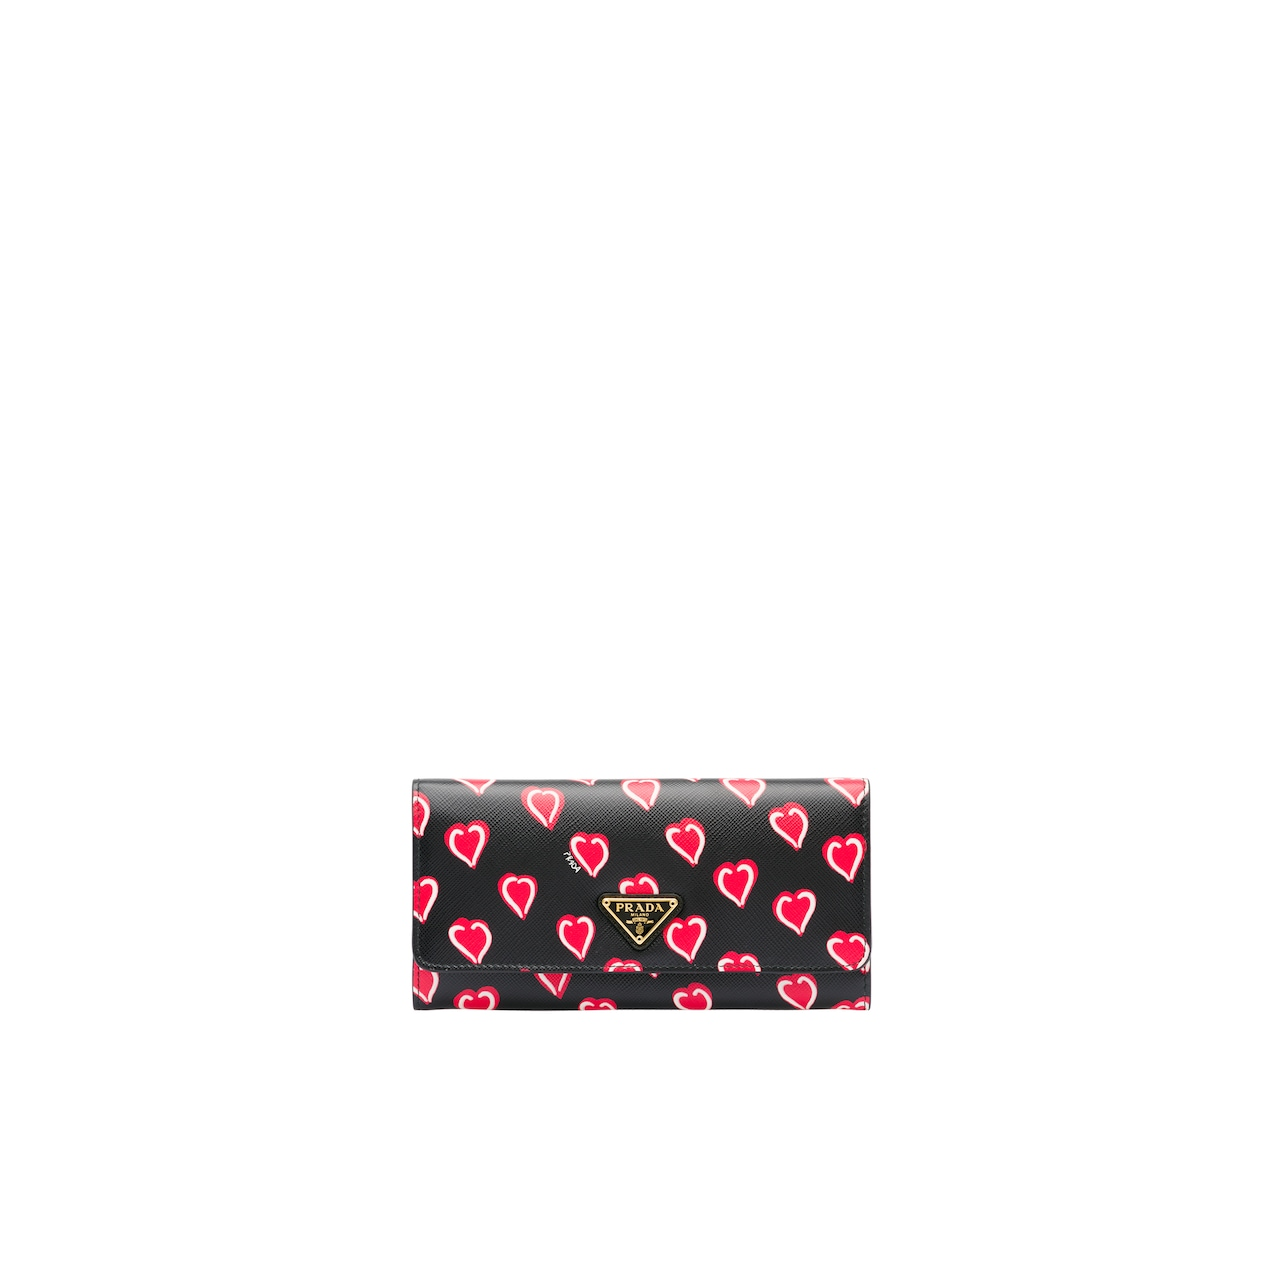 Printed Saffiano leather wallet